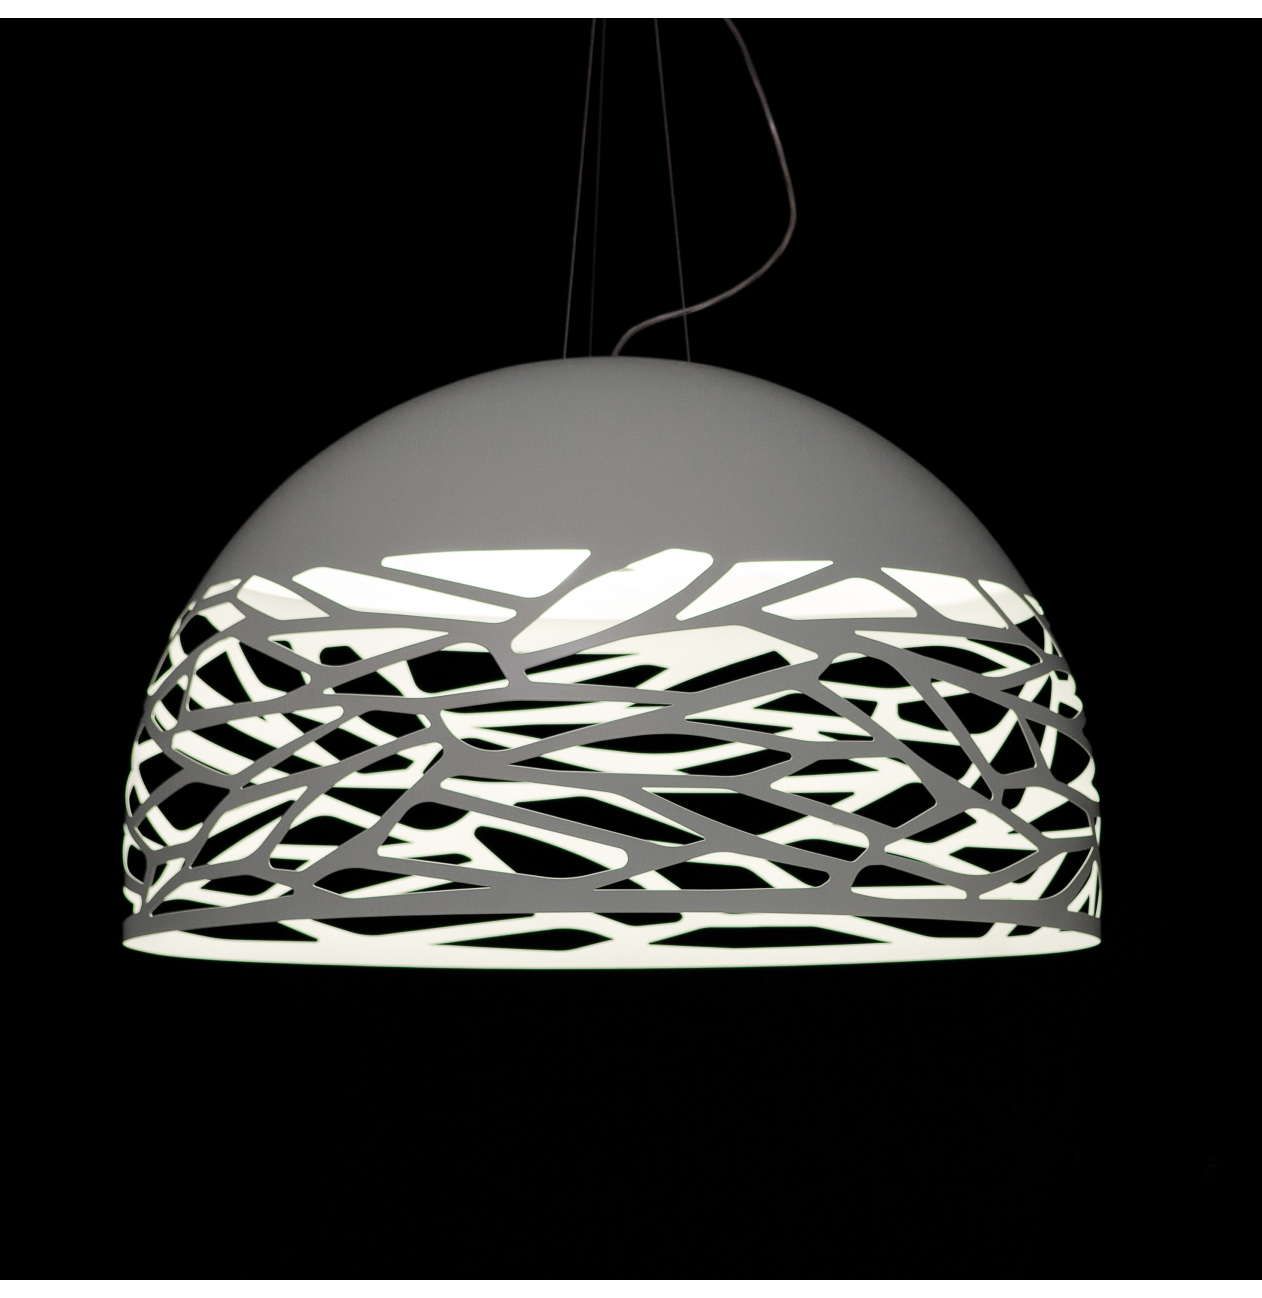 Suspension Luminaire Grand Diametre Studio Italia Hanglamp Kelly Dome Versteeg Lichtstudio